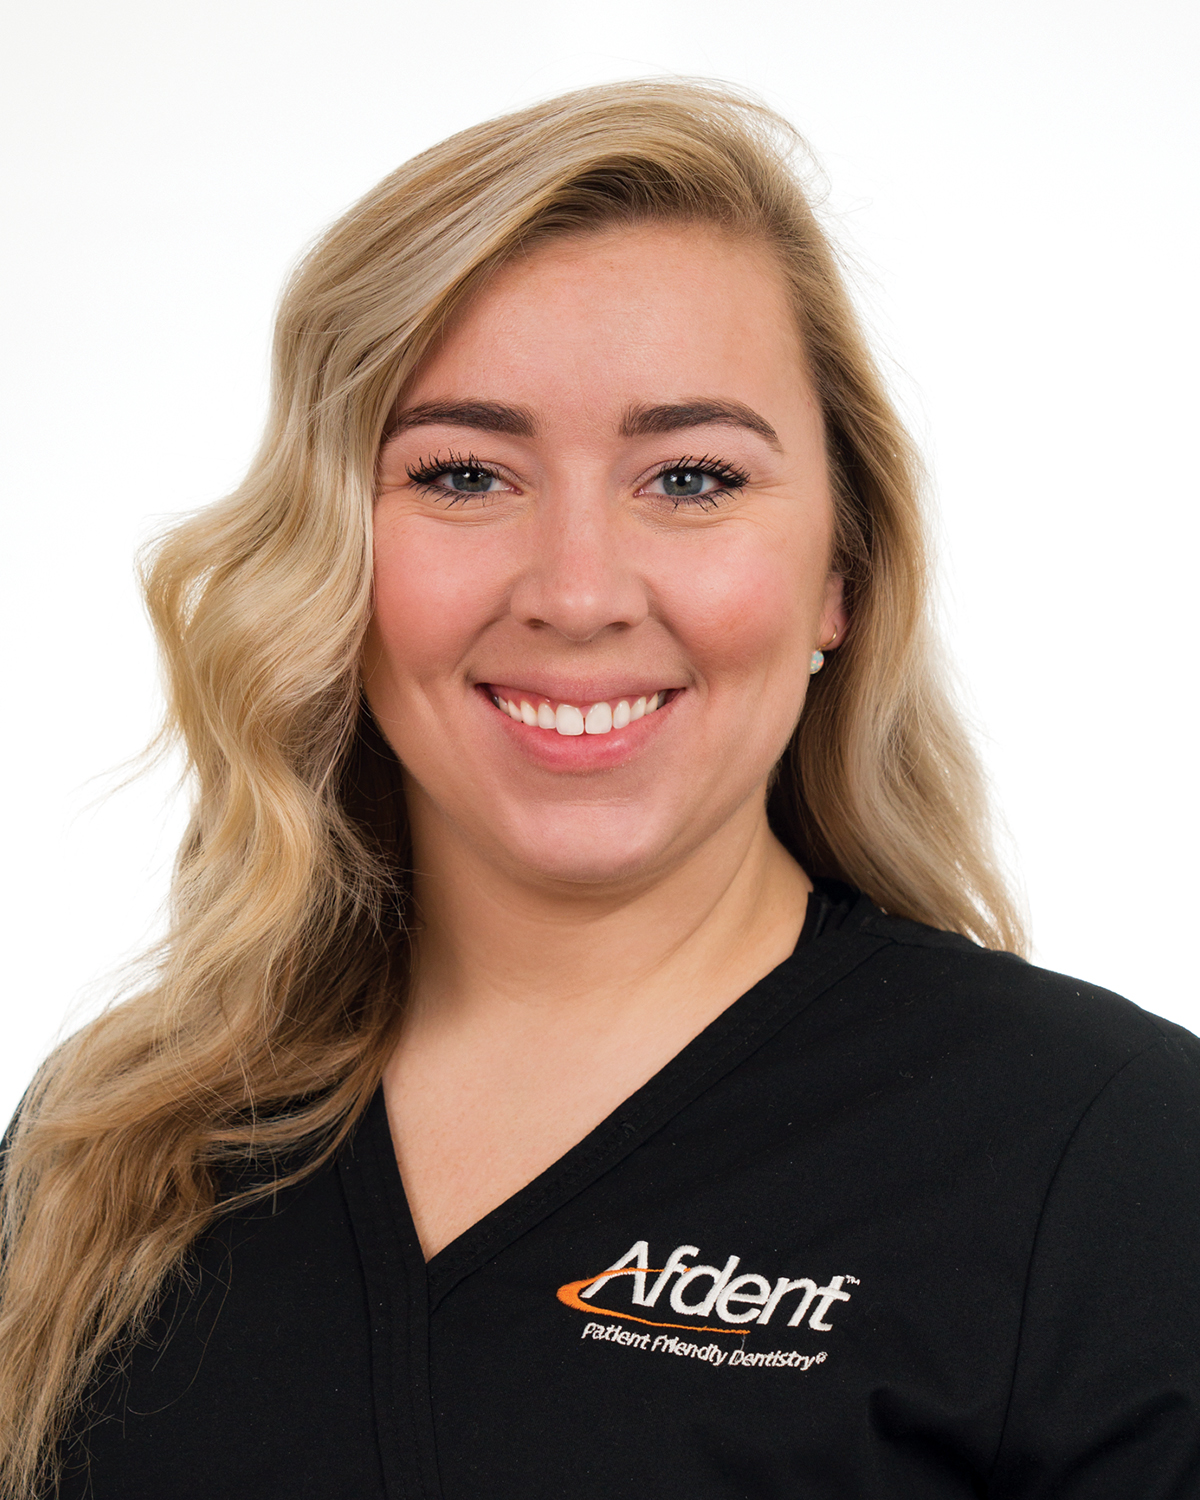 Dr. Abigale Miller, DMD | Dental Care in Mishawaka, IN